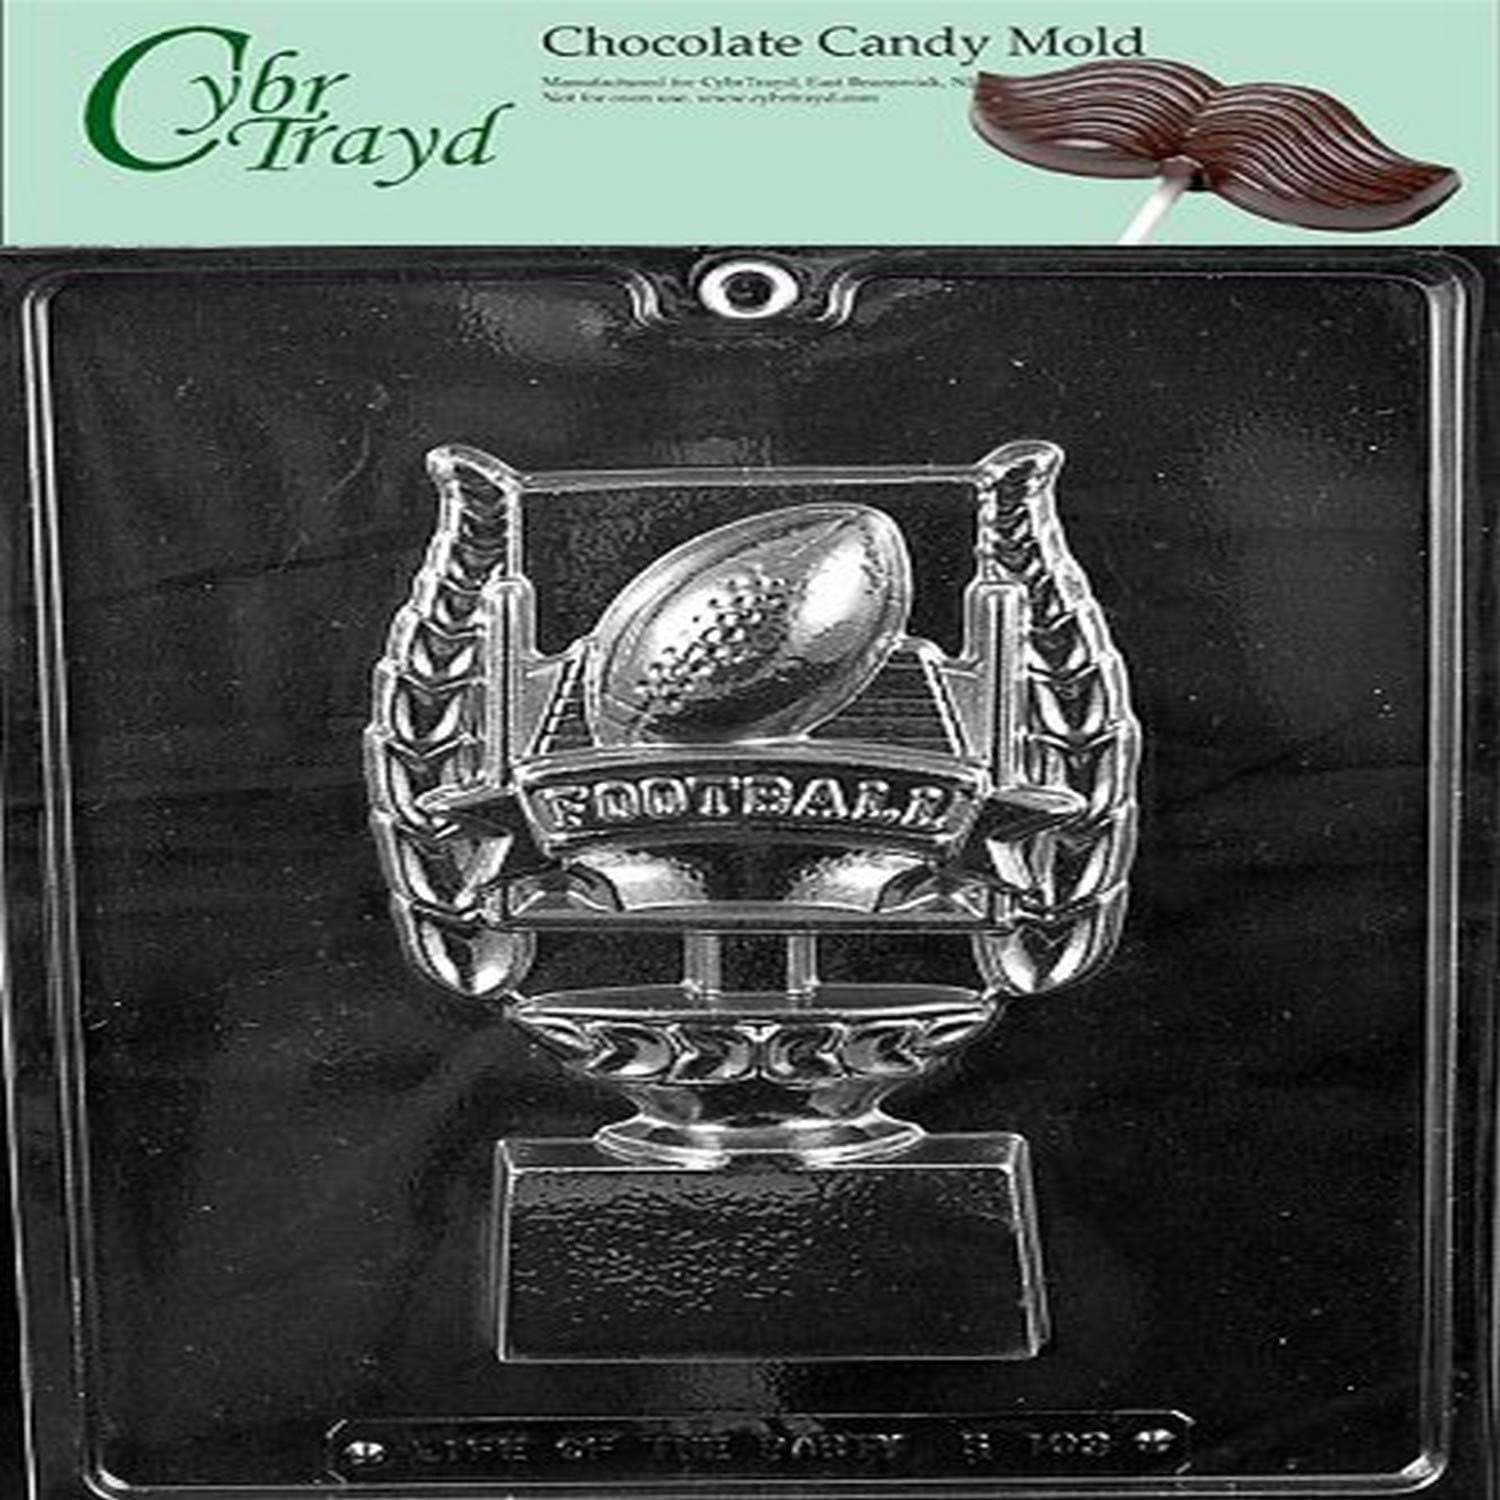 El Paso Mall FOOTBALL Mail order TROPHY FOR SPECIALTY candy chocolate mold